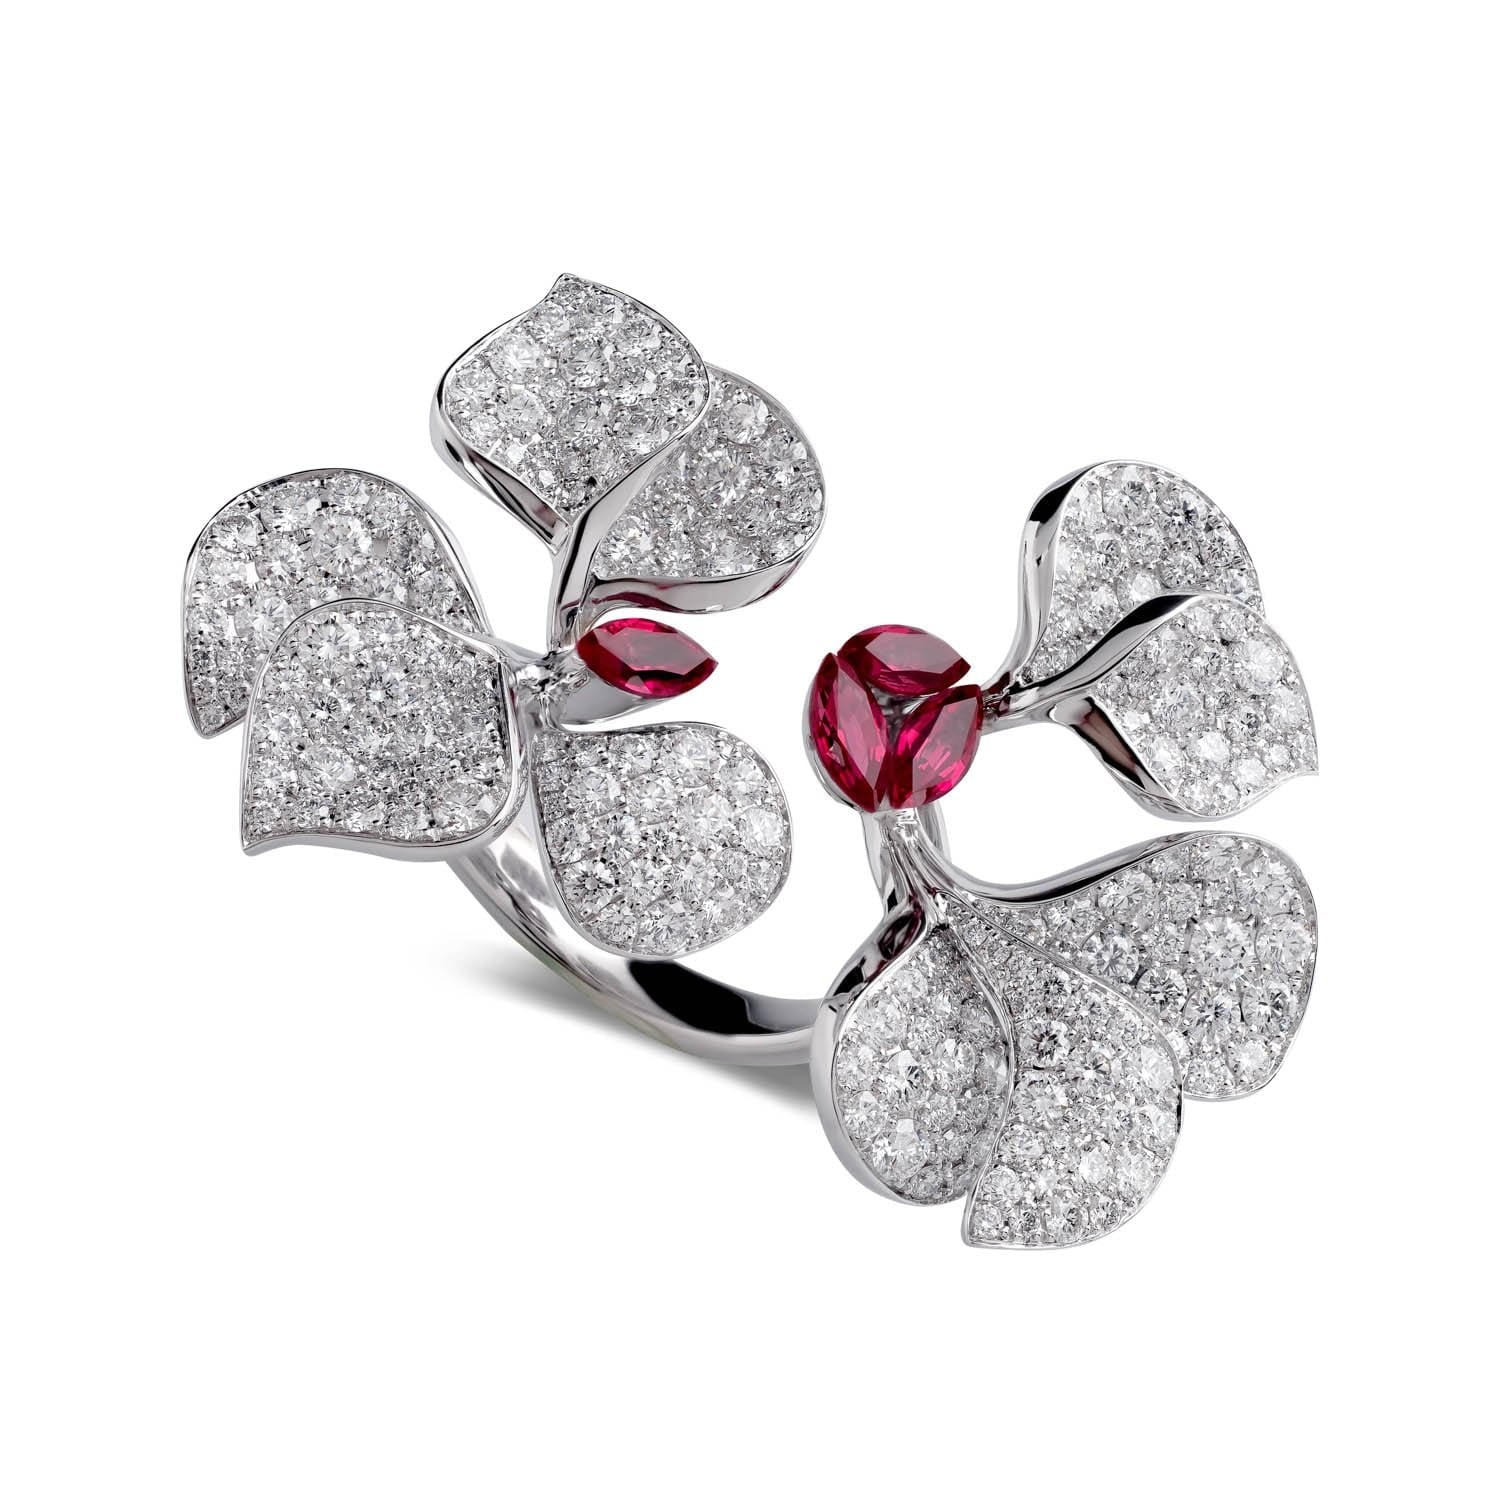 À FLEUR DE PARIS Ruby Double Ring